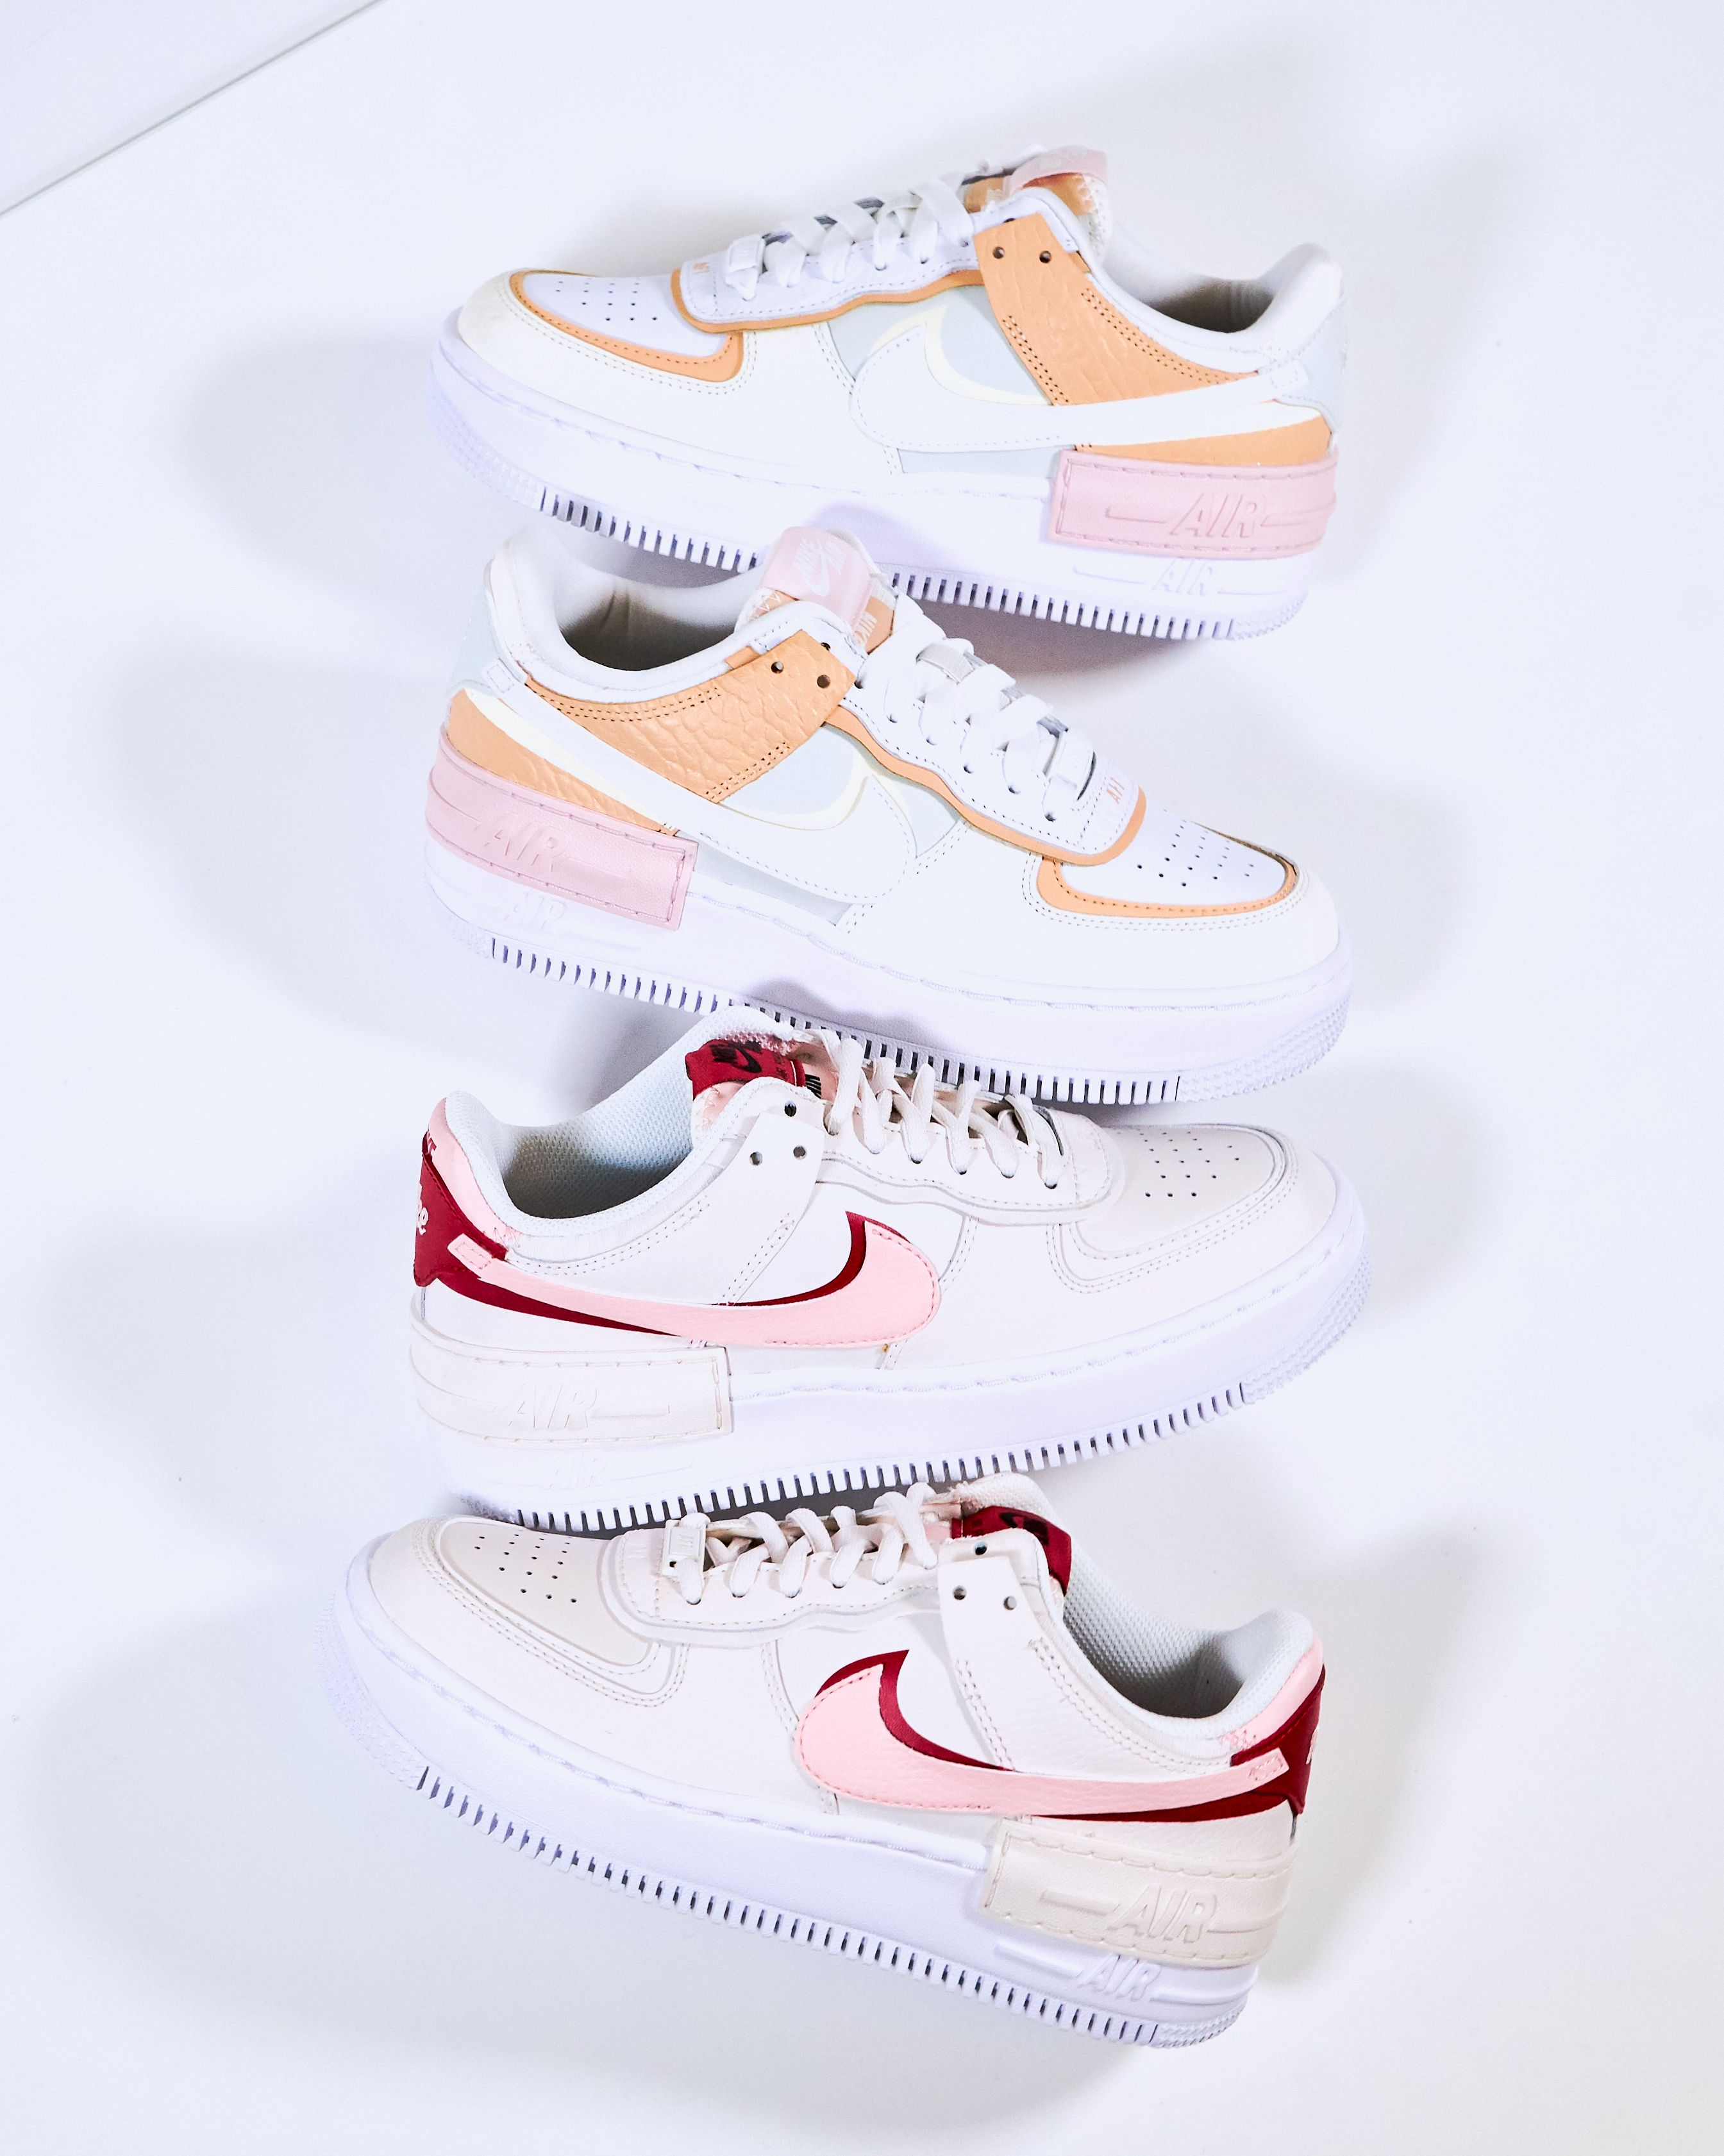 Shadow with Love ???? | Chaussure nike air, Nike air force, Chaussure